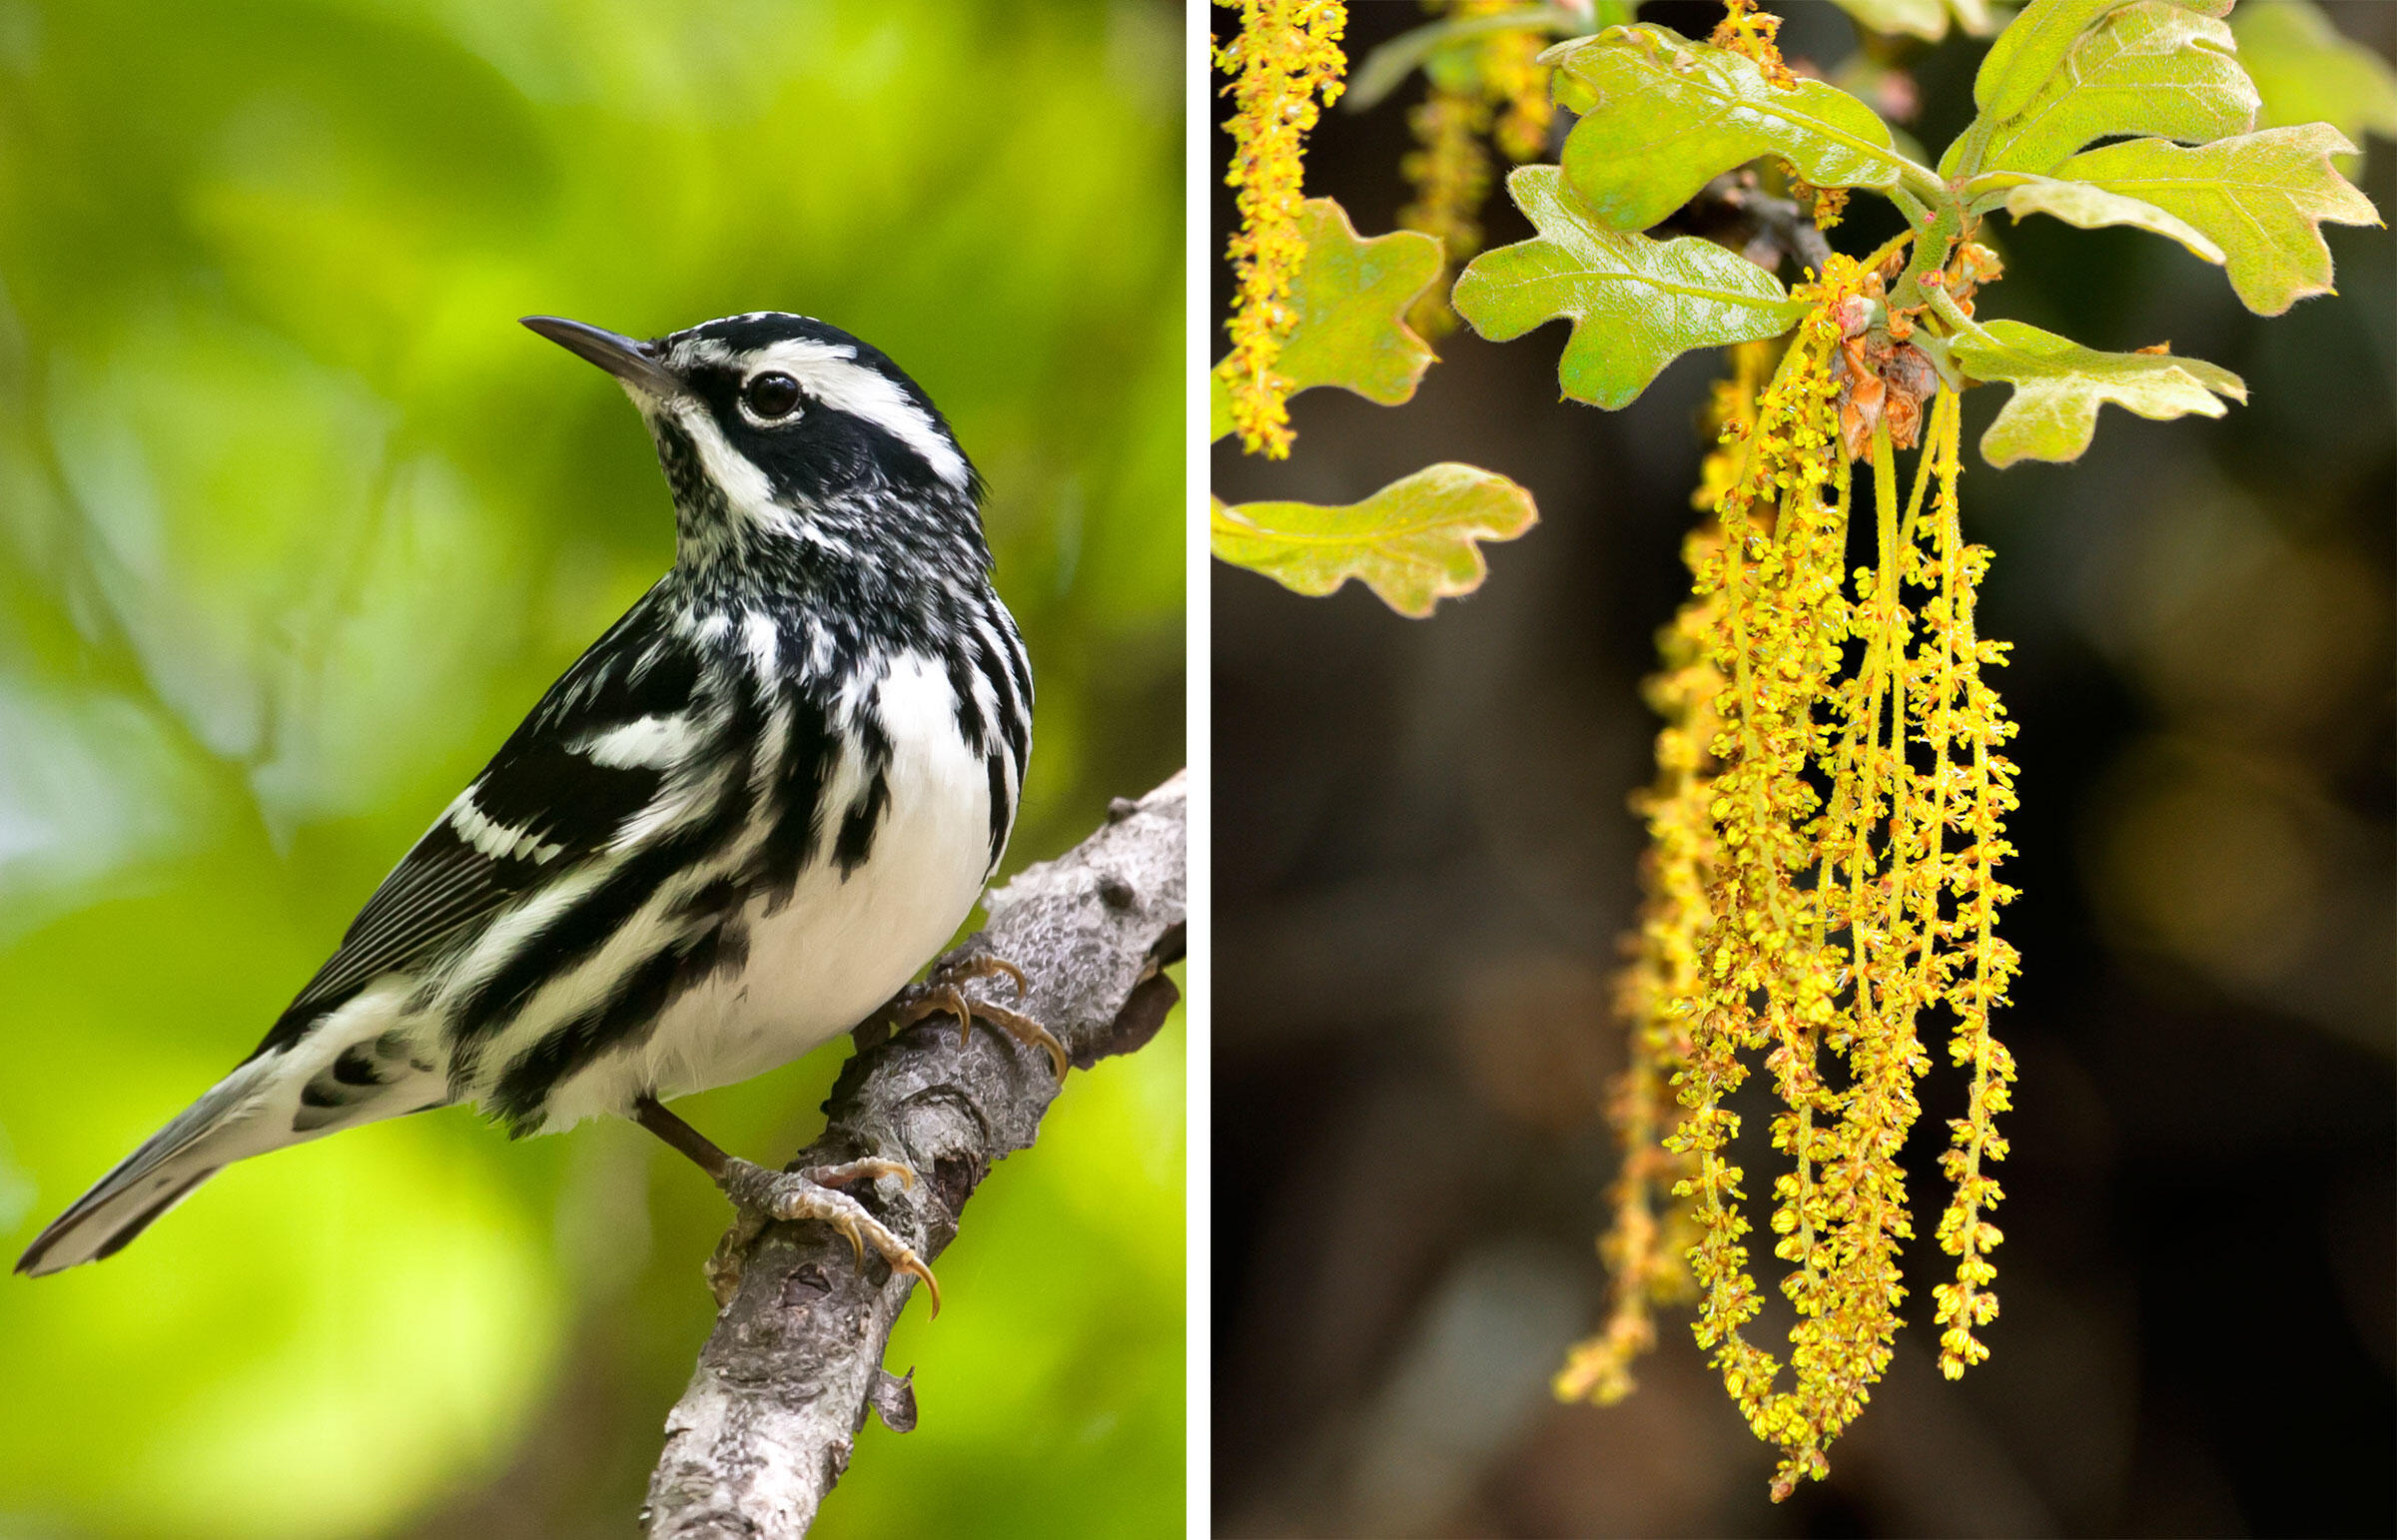 From left: Black-and-white Warbler. Photo: Frode Jacobsen; Oak catkins. Photo: BA LaRue/Alamy